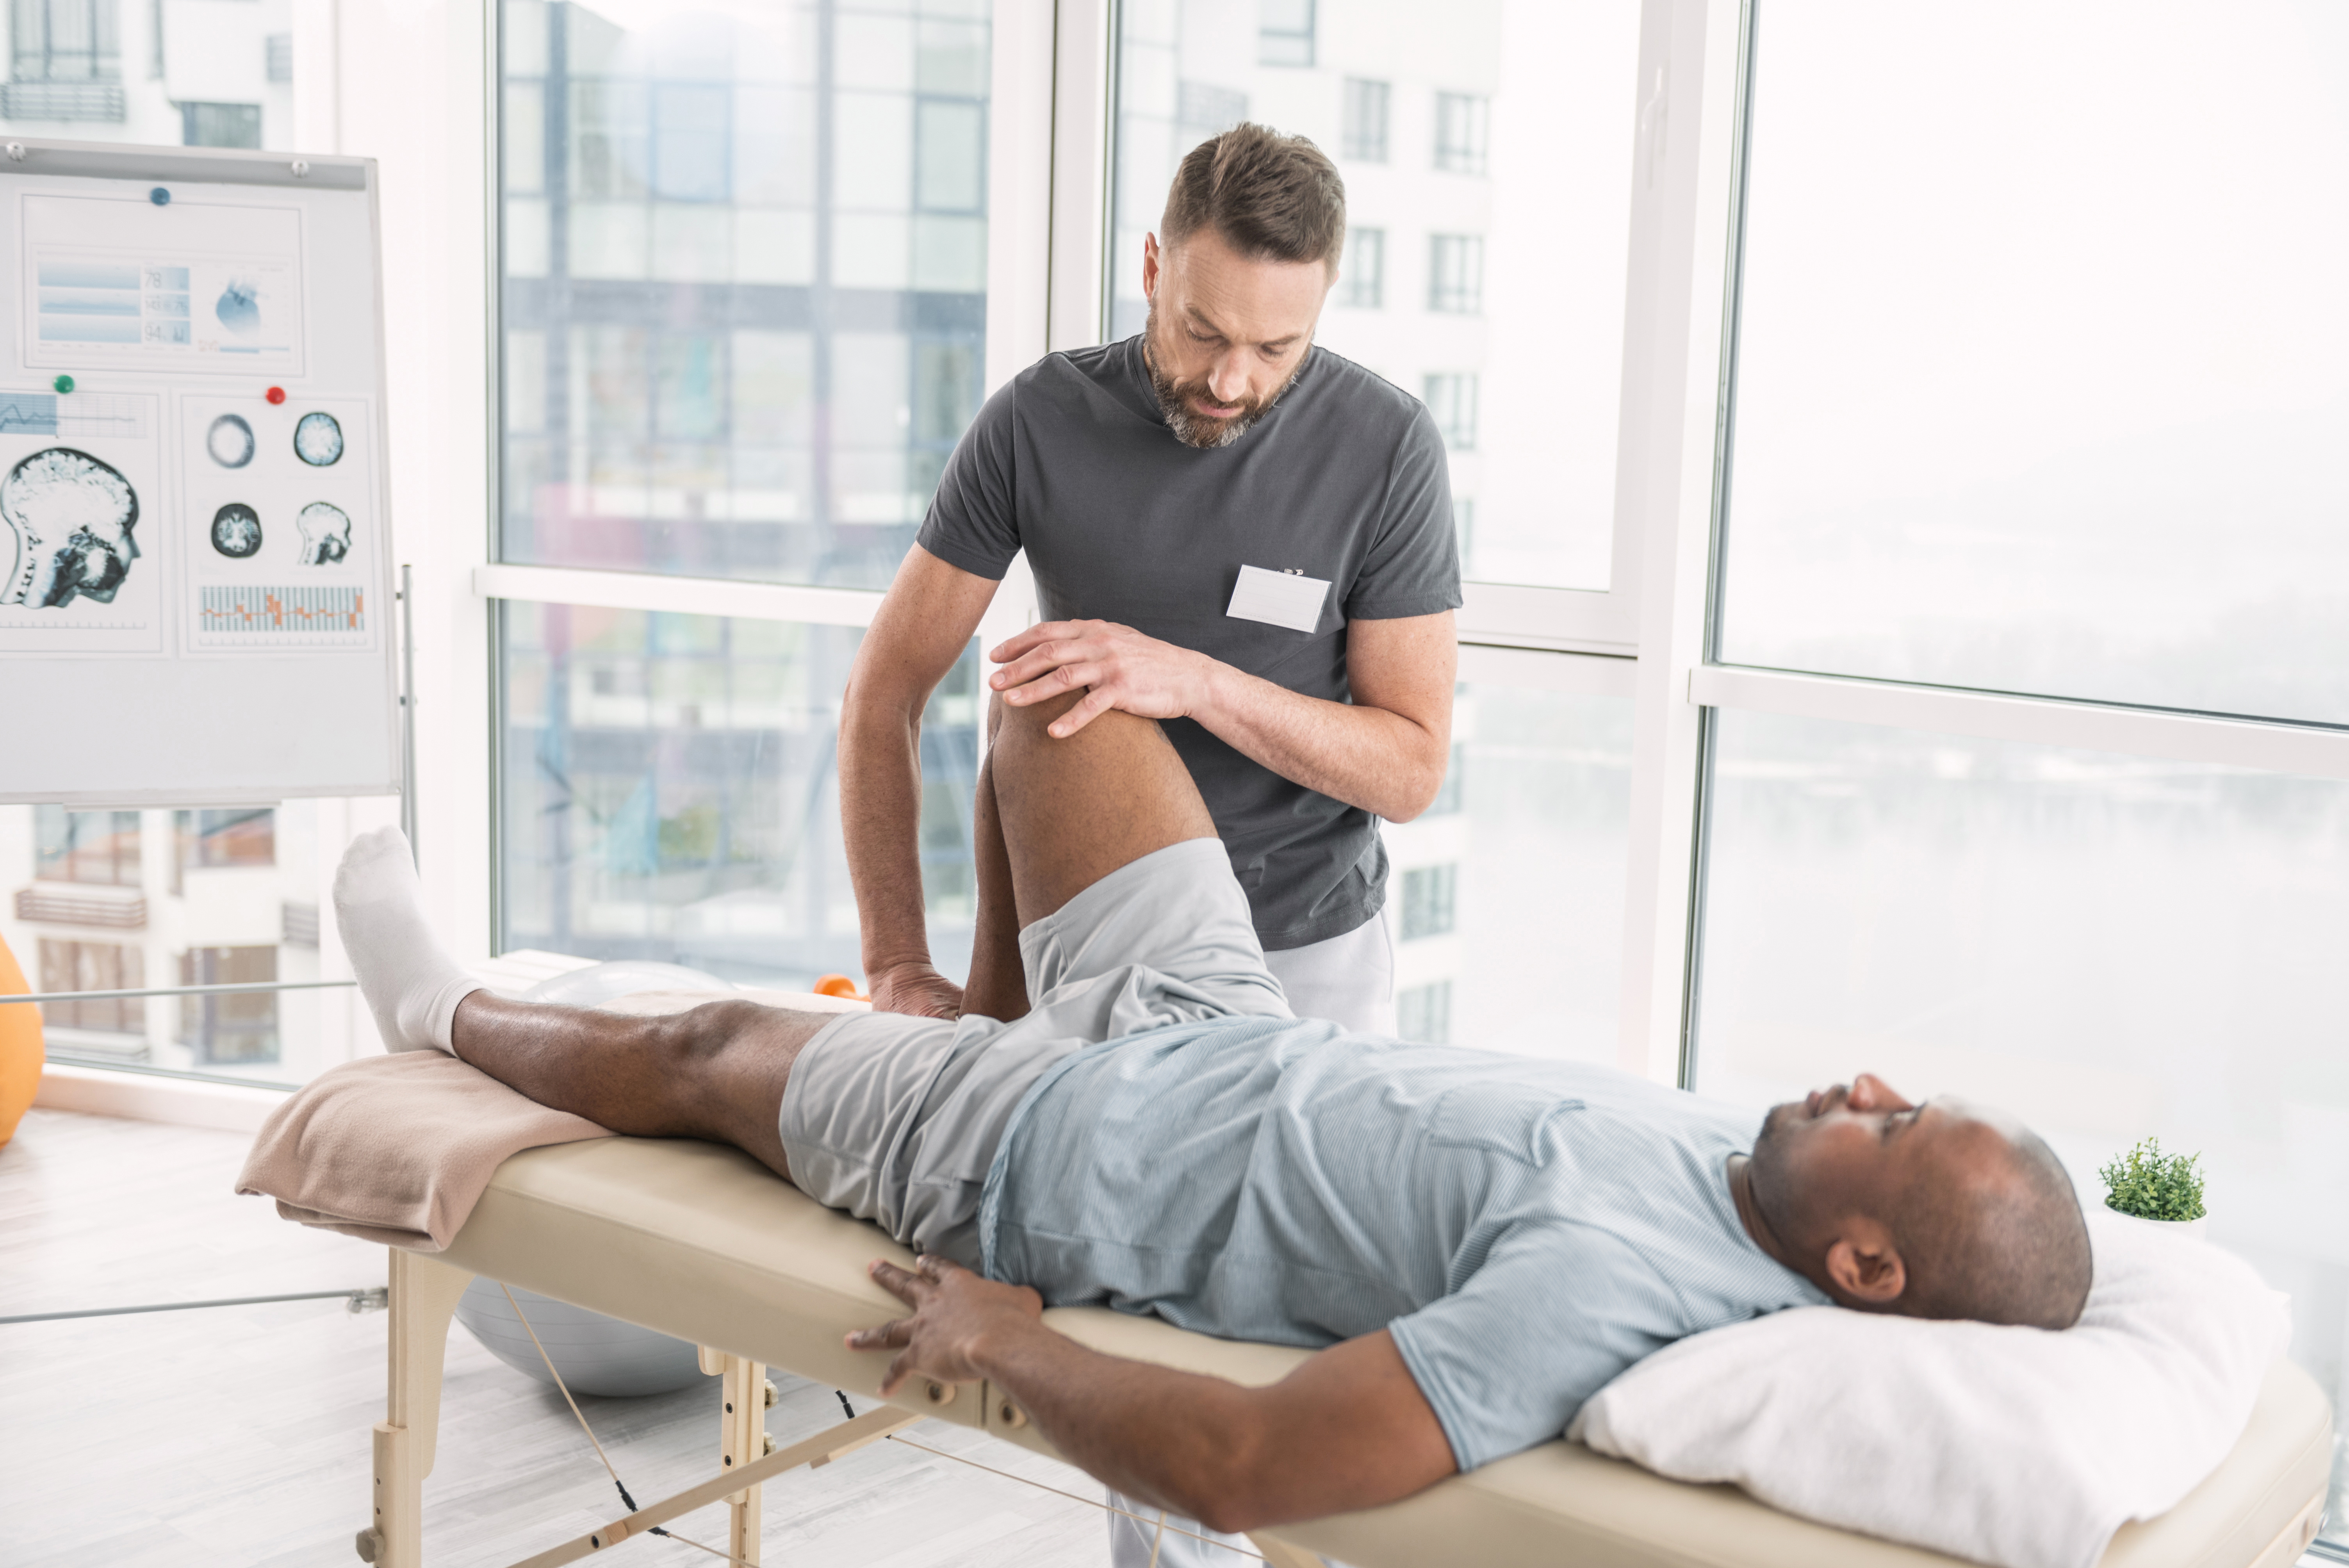 Established Physical Therapy Practice in Heart of Merced County